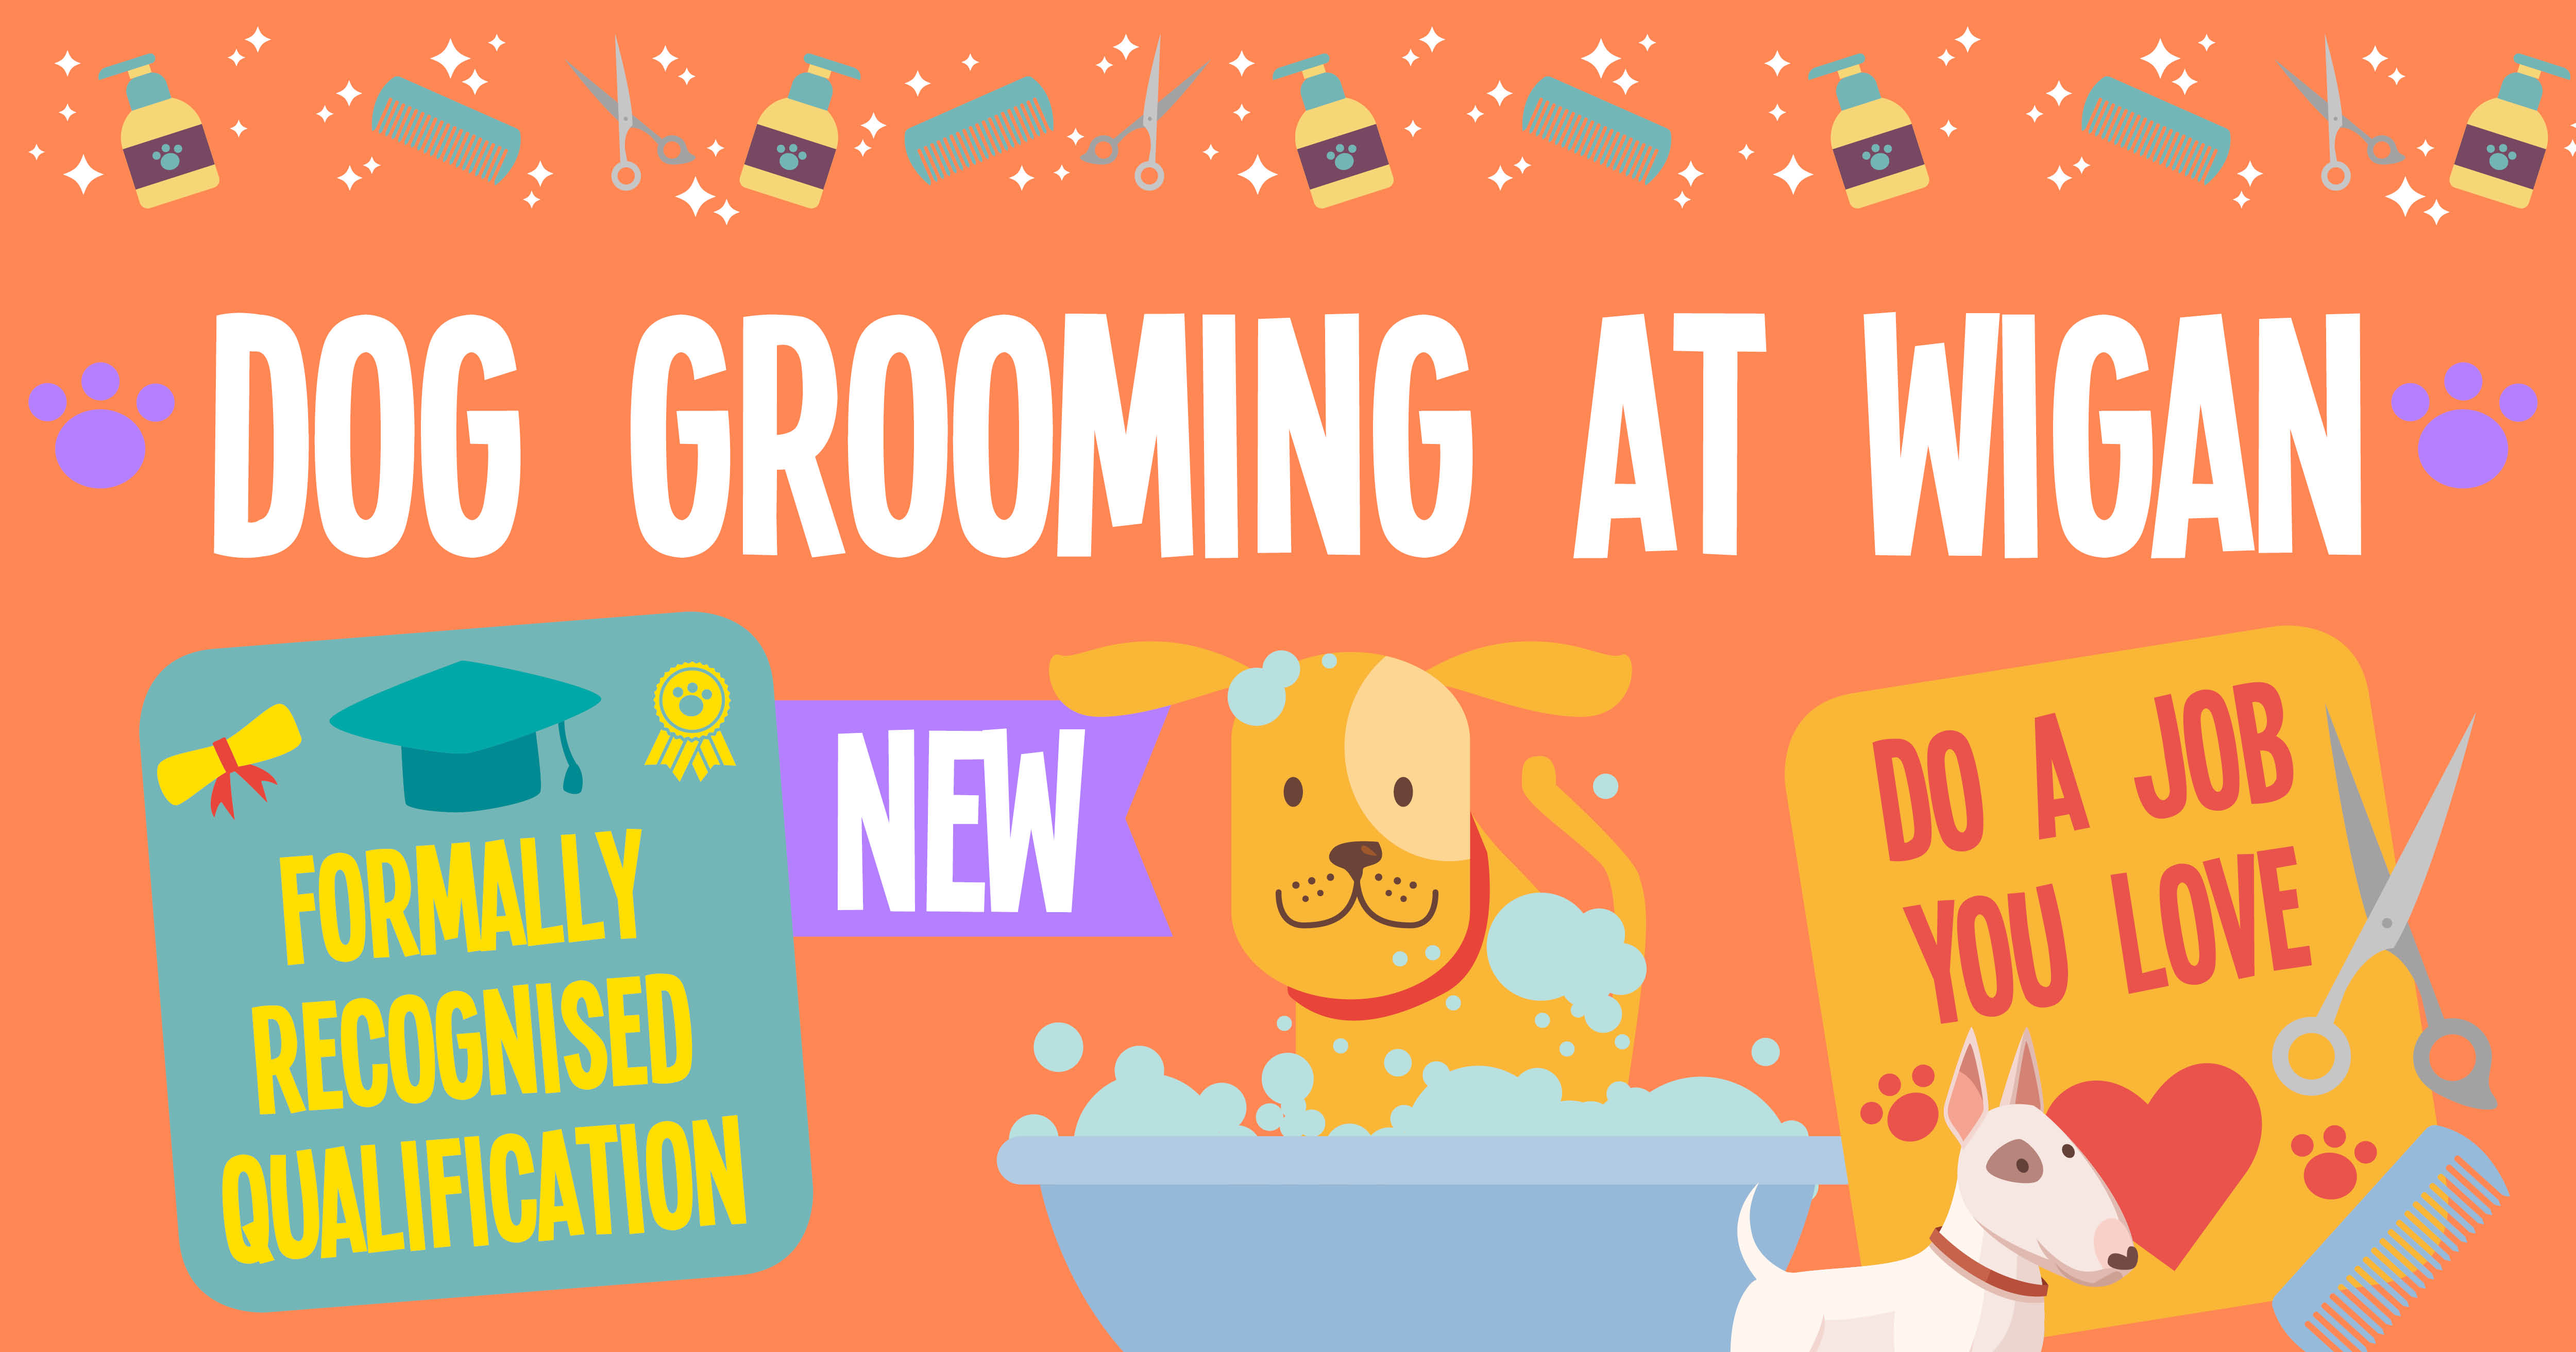 CAW Grooming School Expands to Wigan